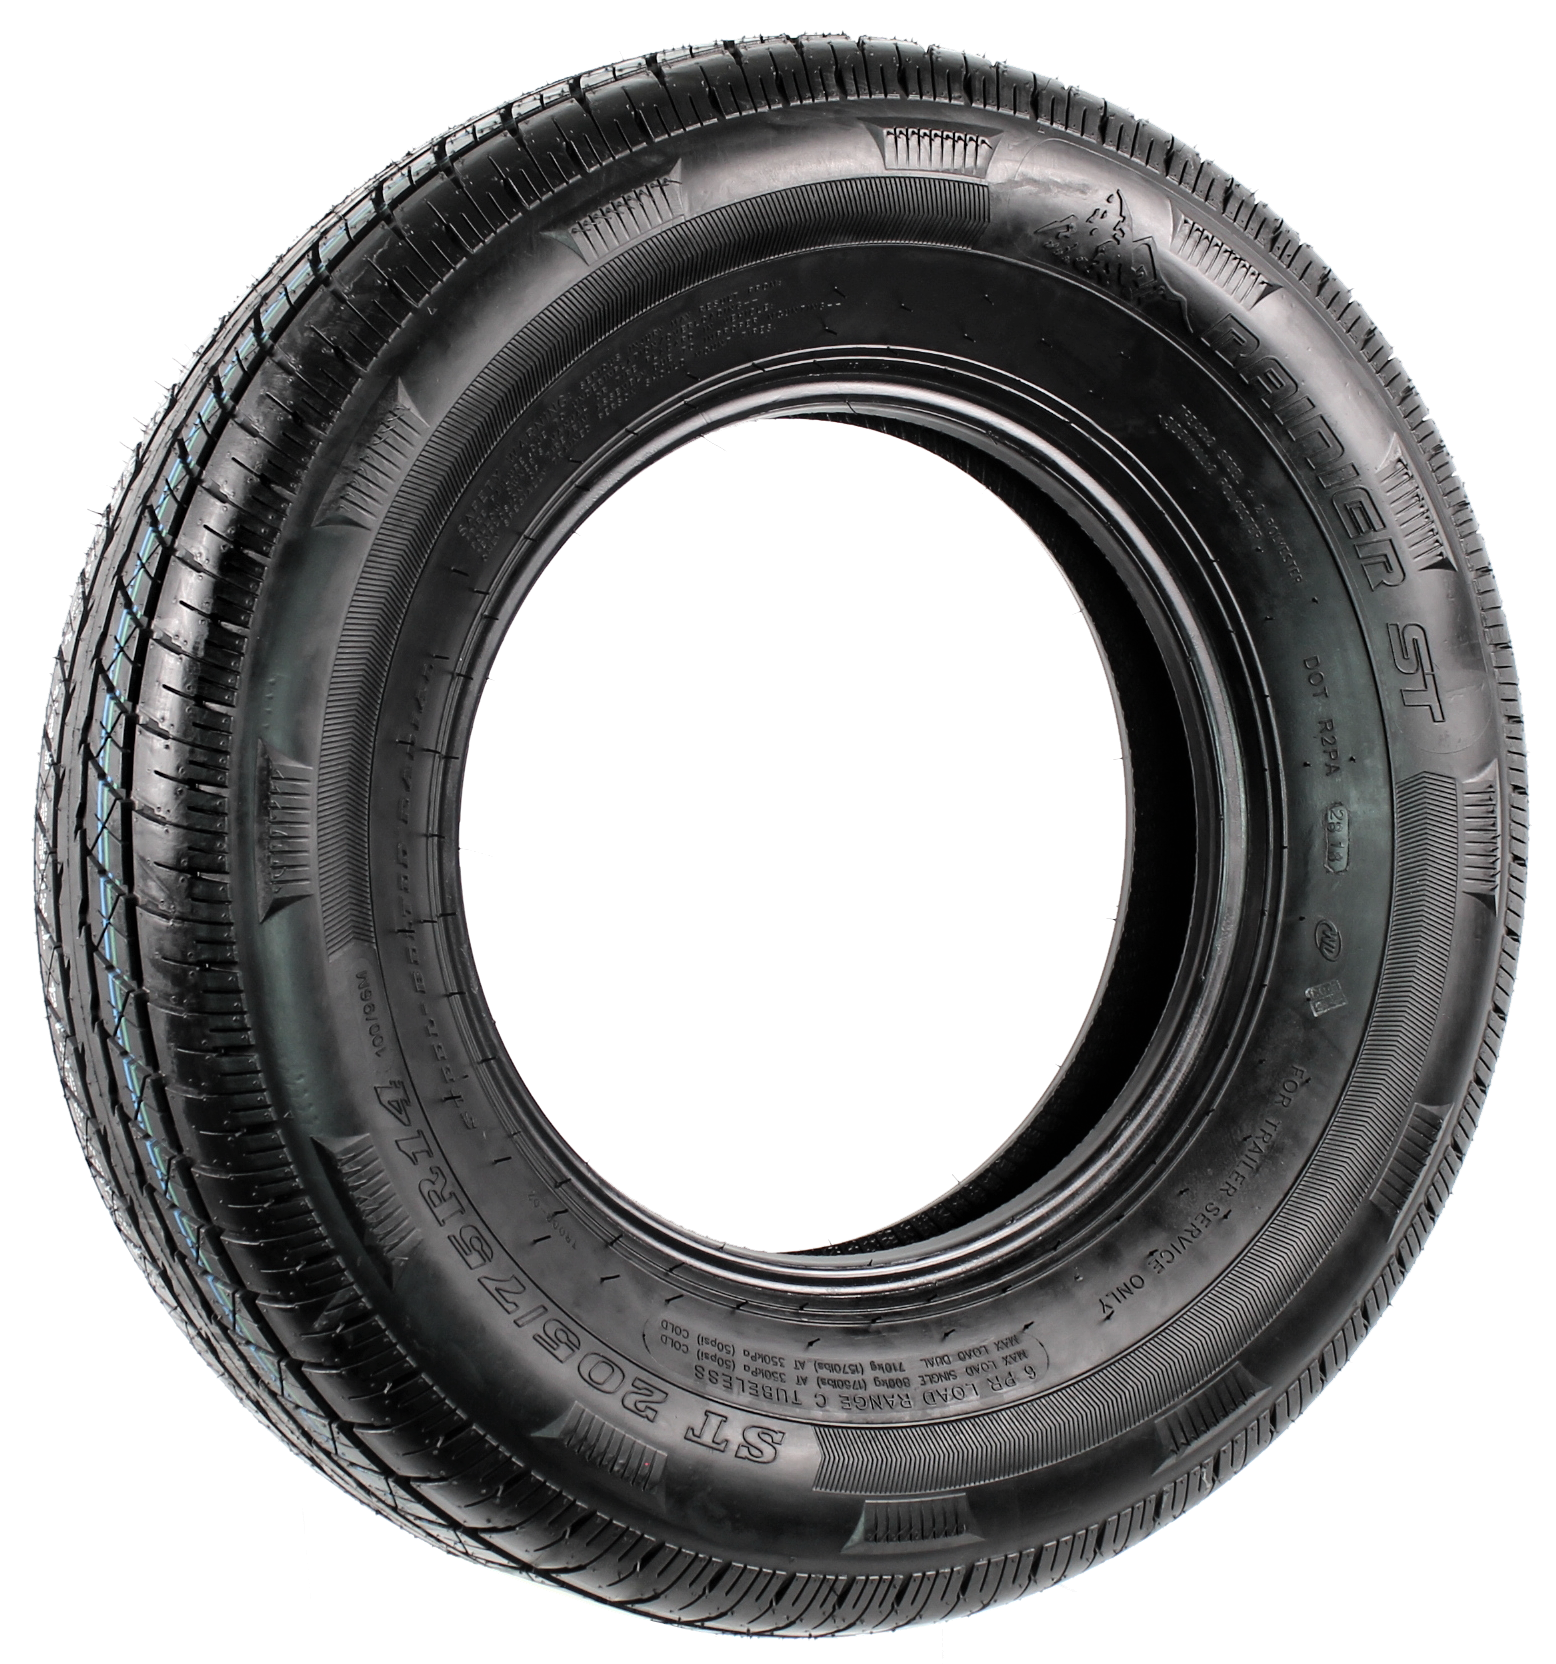 Rainier ST205/75R14 LRC 6-Ply Radial Trailer Tire Image